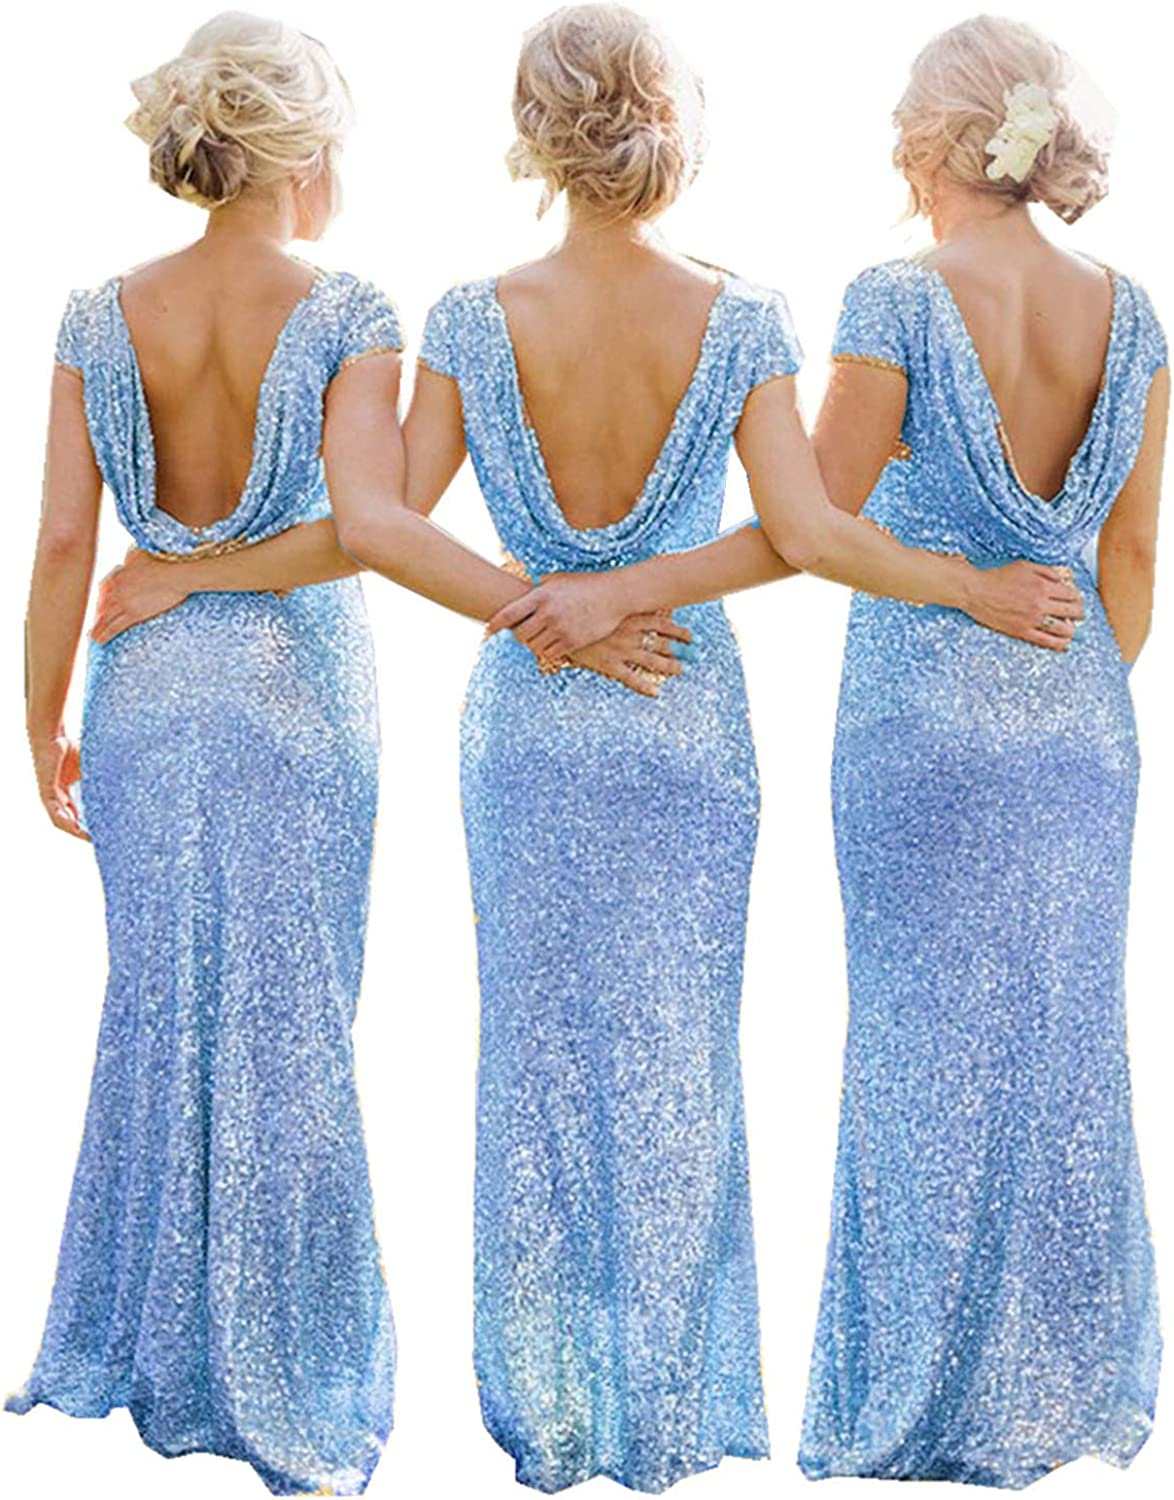 Ruiyuhong Women's Sexy Backless Sequined Bridesmaid Dresses Aline Wedding Party Dresses